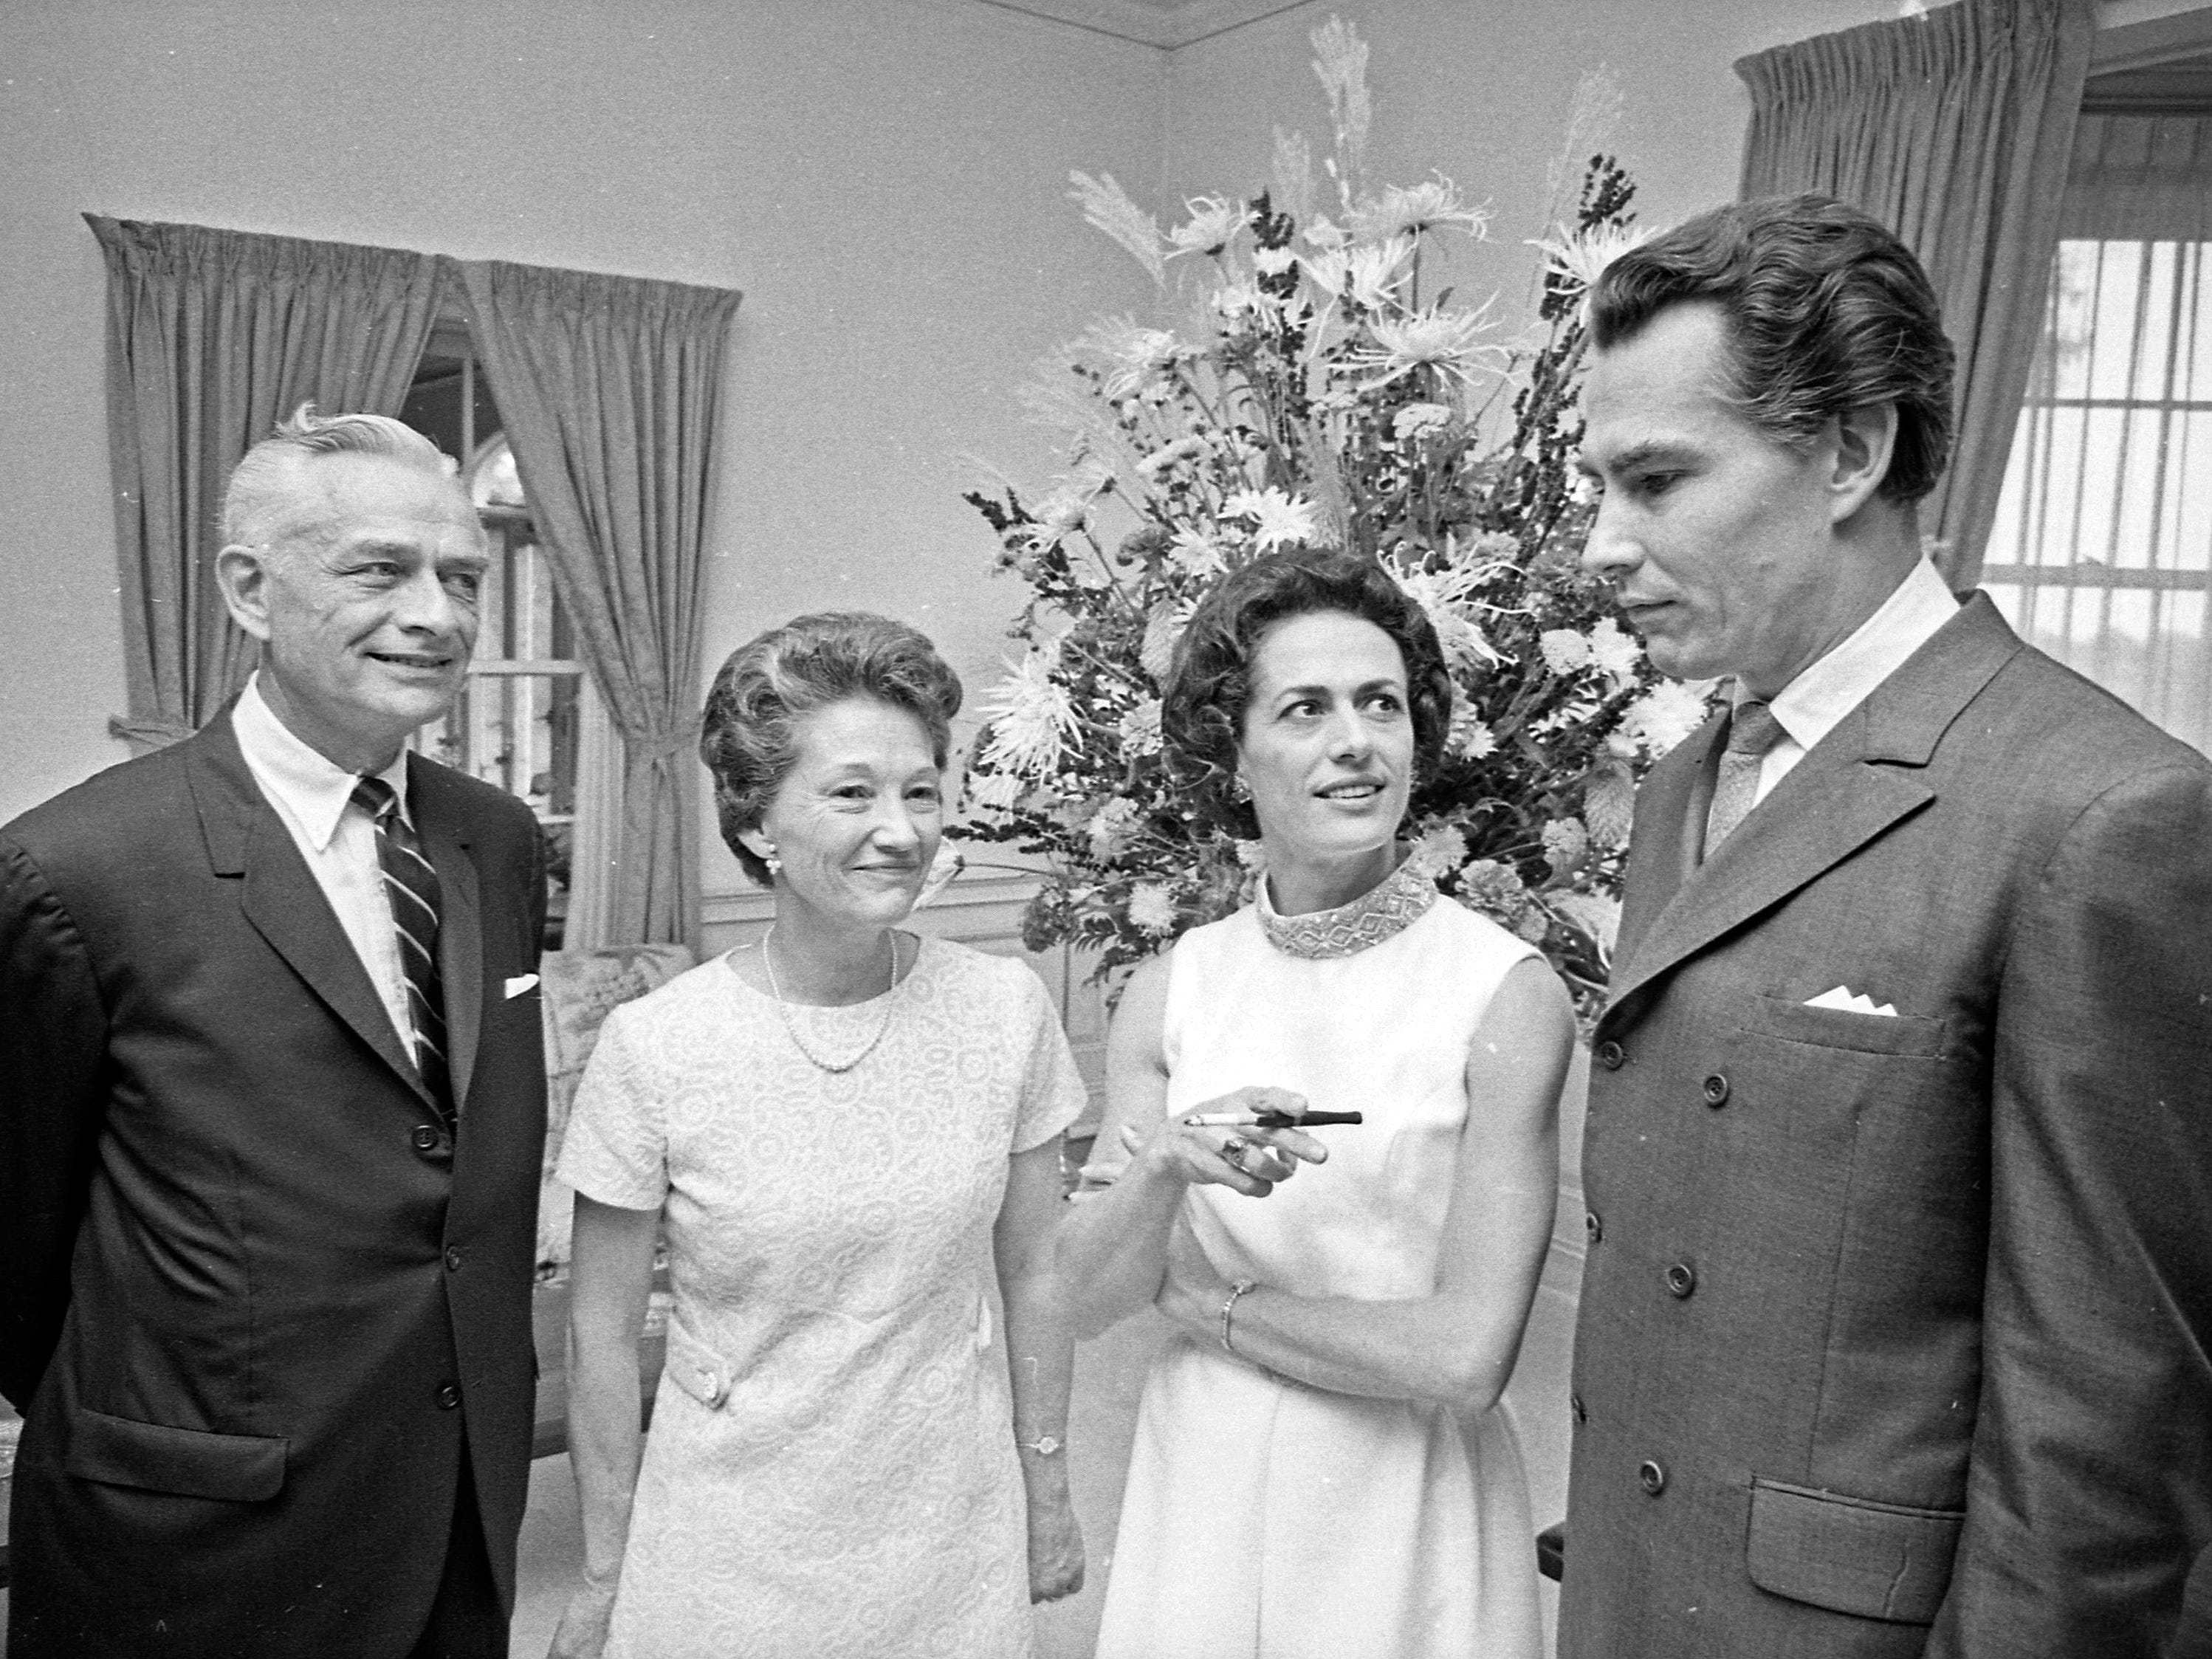 Kenneth Schermerhorn (right) and his wife, Lupe Serrano (second from right) stand with Donald B. Abert and Barbara Abert at a reception for Schermerhorn, the Milwaukee Symphony Orchestra's new conductor and music director, at the Milwaukee Country Club on Sept. 8, 1968. At the time, Donald Abert, publisher of The Milwaukee Journal, was president of the Milwaukee Symphony.